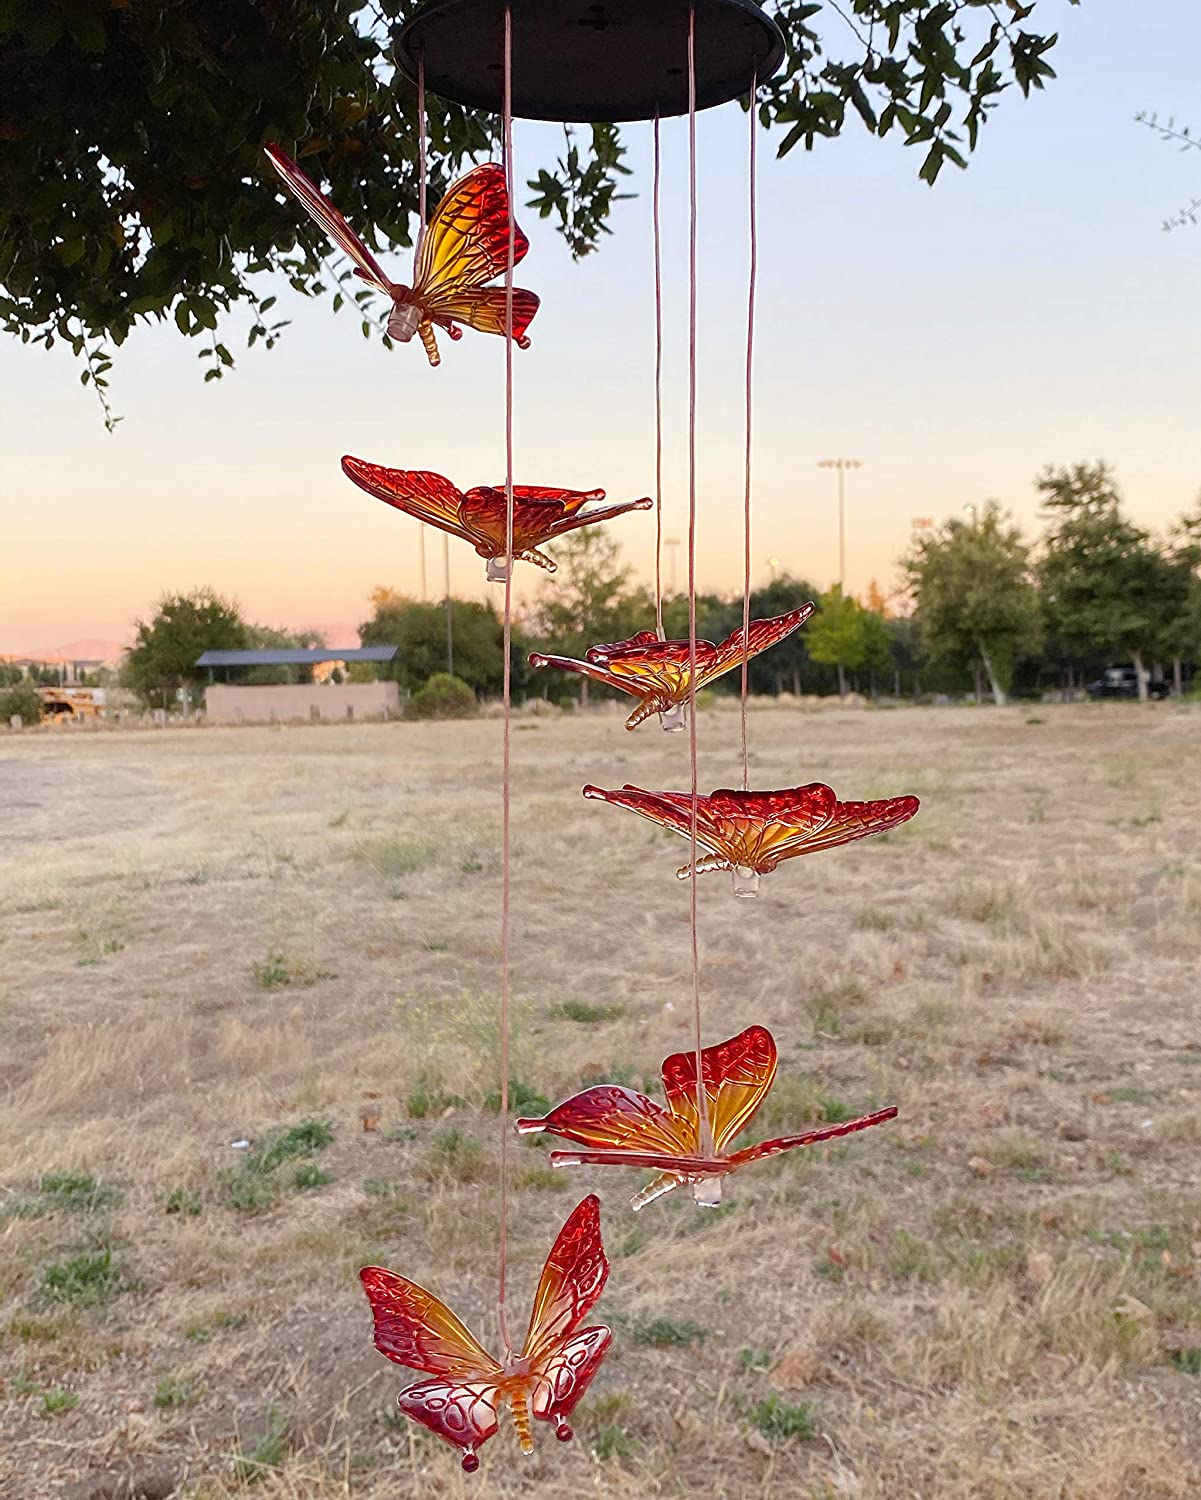 LINGBUSINESS Butterfly Solar Wind Chimes Outdoor Color Changing Waterproof LED Mobile Light Spiral Spinner Home Garden Patio Yard Decor Garden Festival Decorative Indoor Outdoor, Maple Red Butterfly